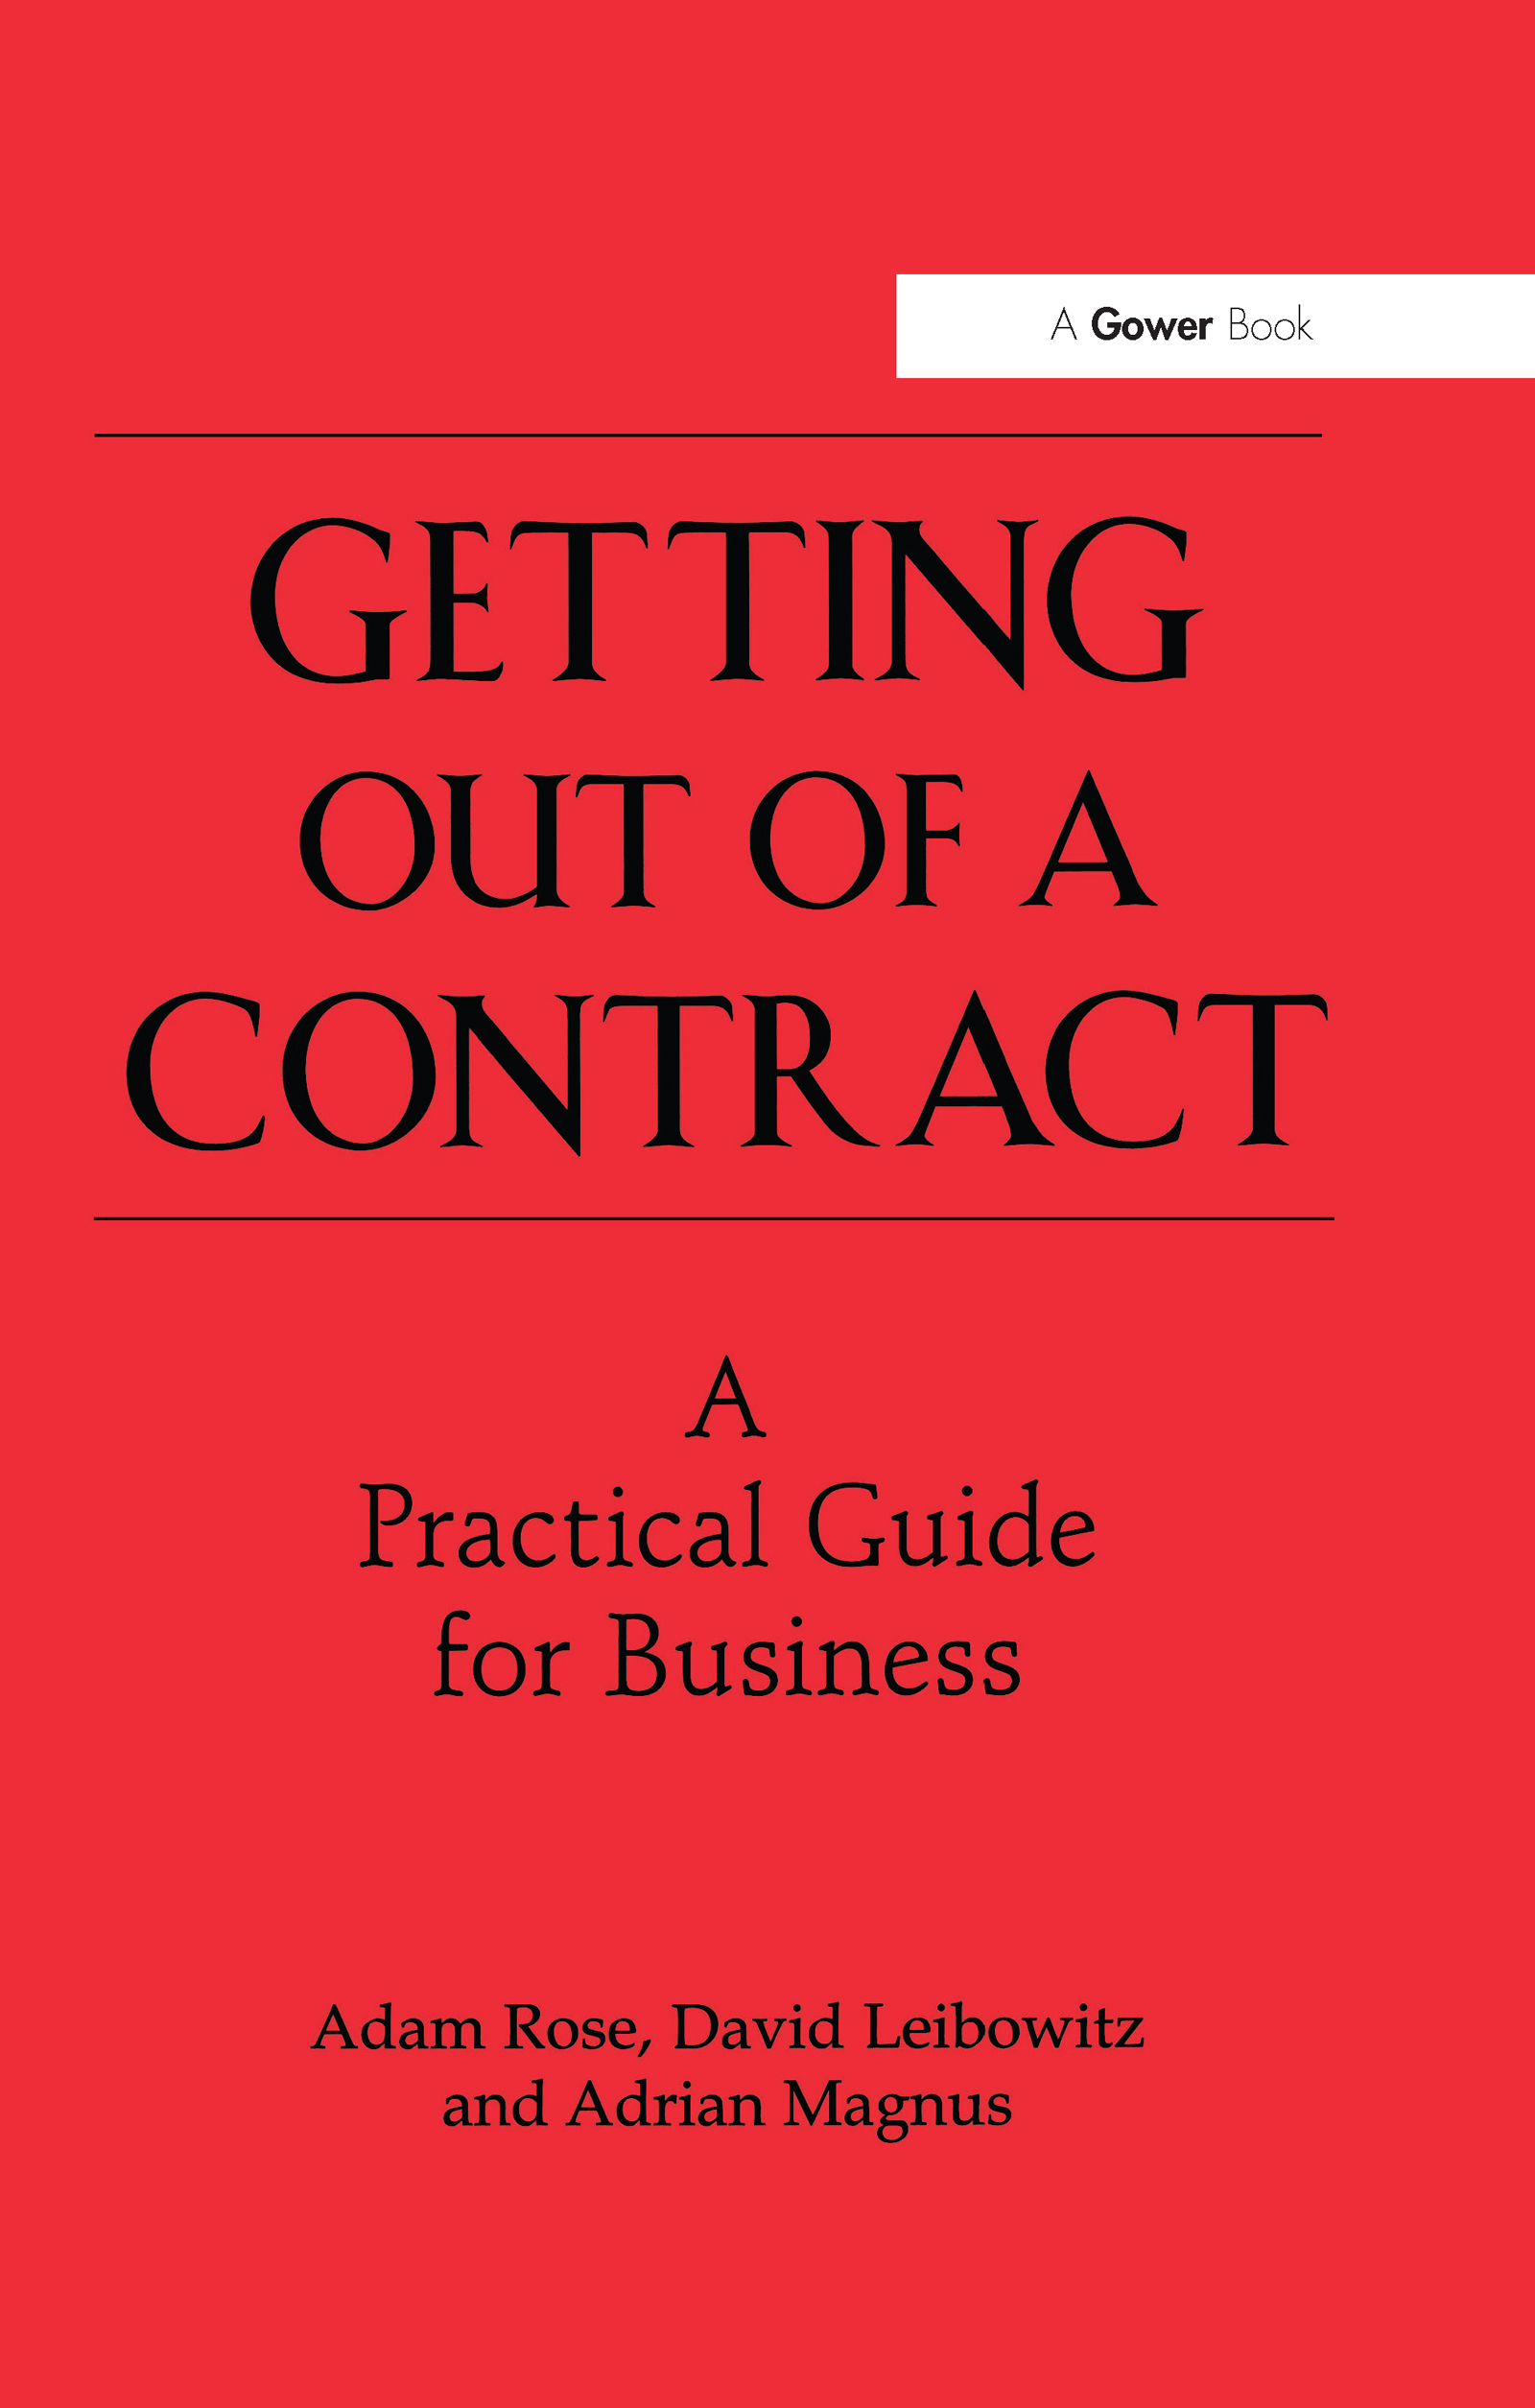 Getting Out of a Contract - A Practical Guide for Business book cover